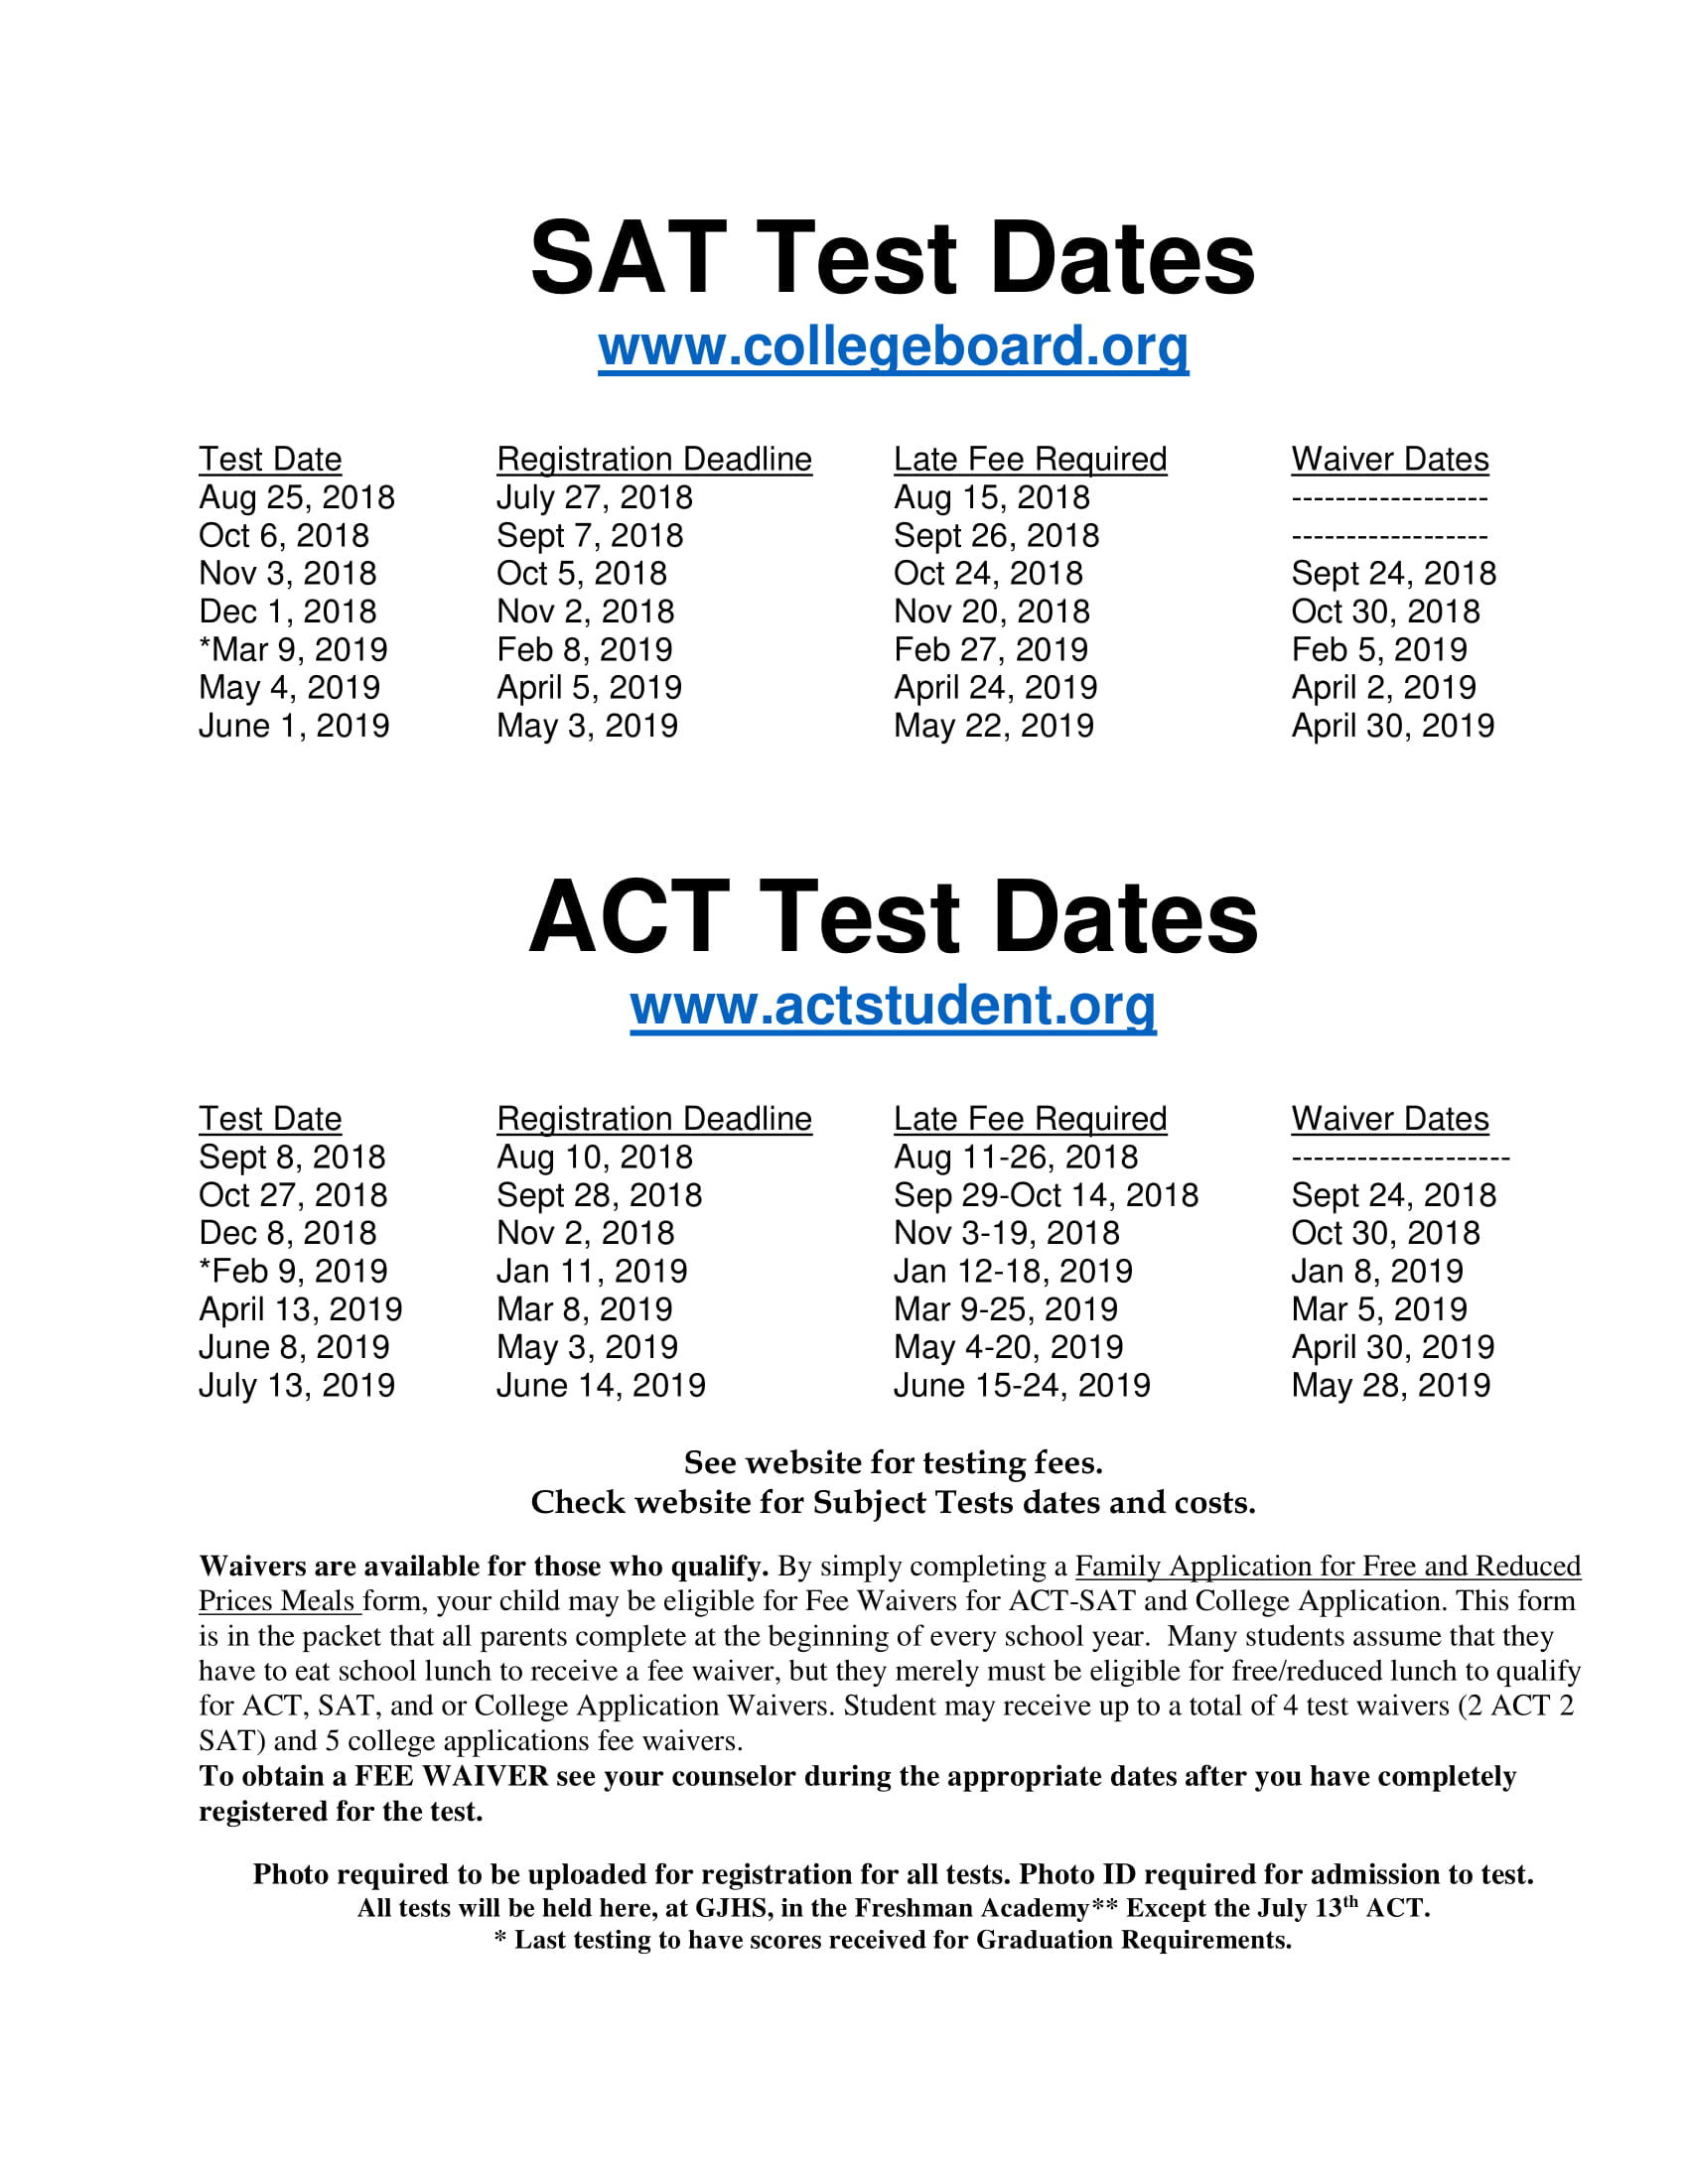 SAT/ACT Test Dates | GJHS